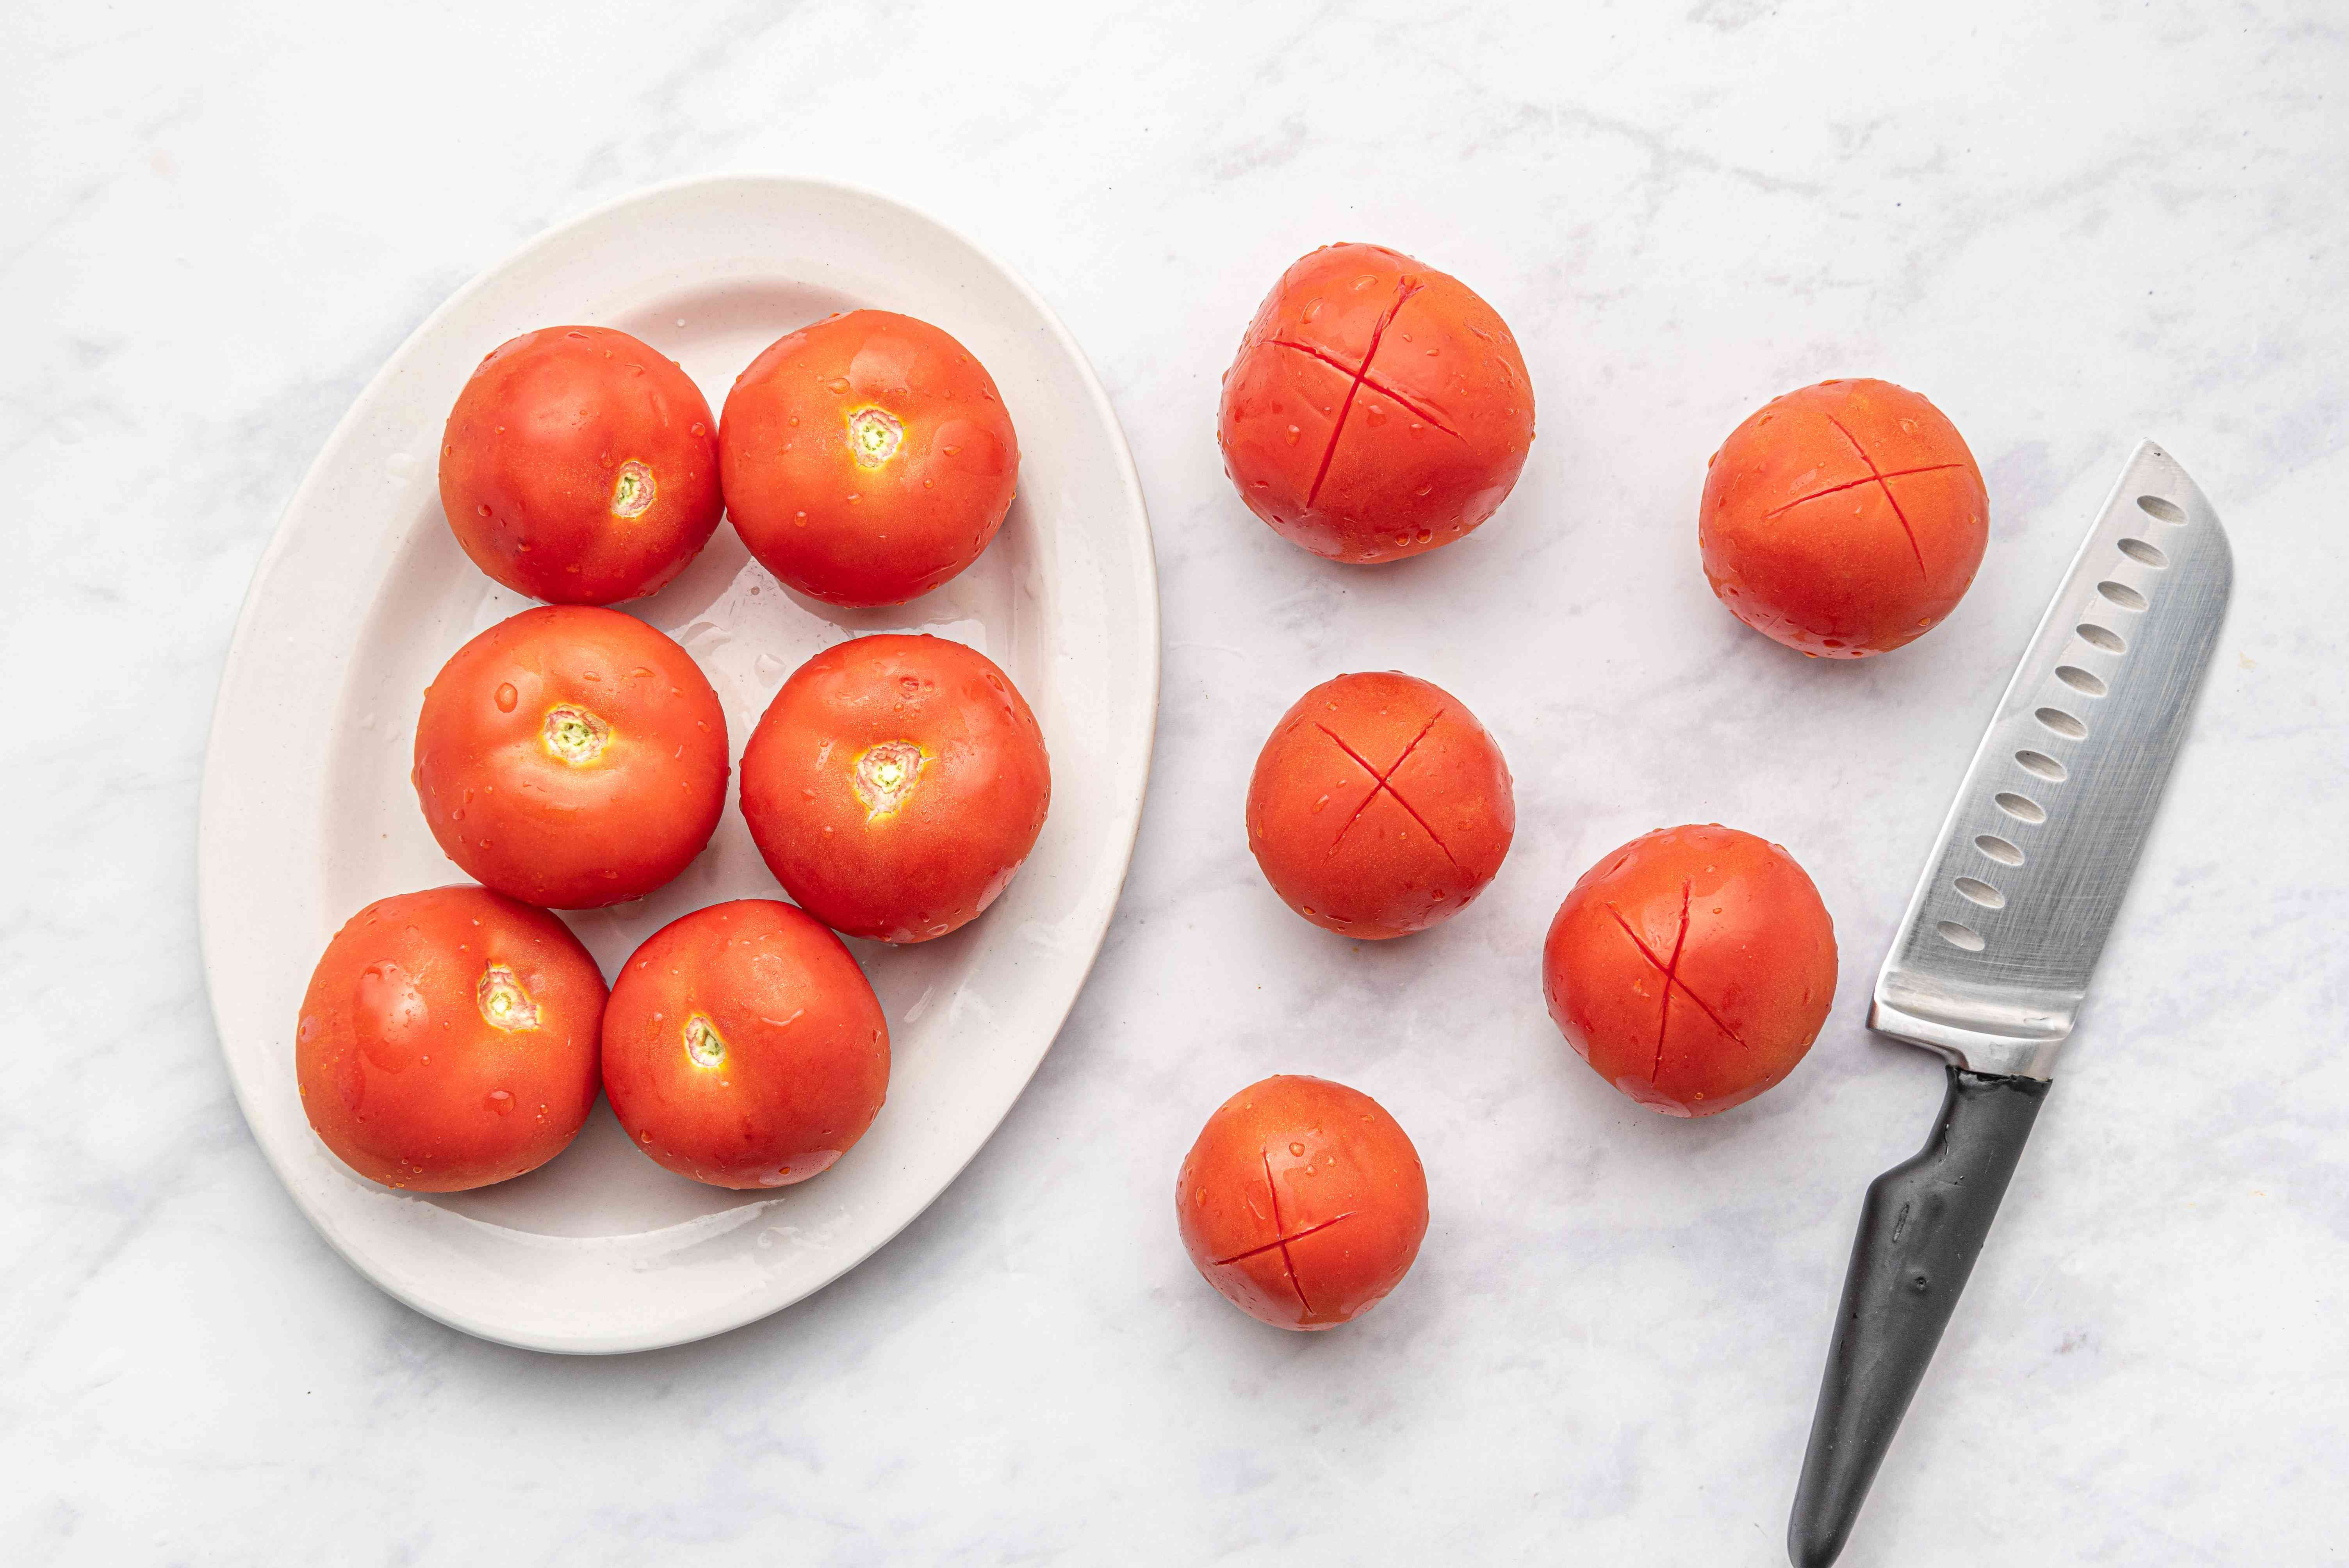 Make an X-shaped superficial cut at the bottom of each tomato